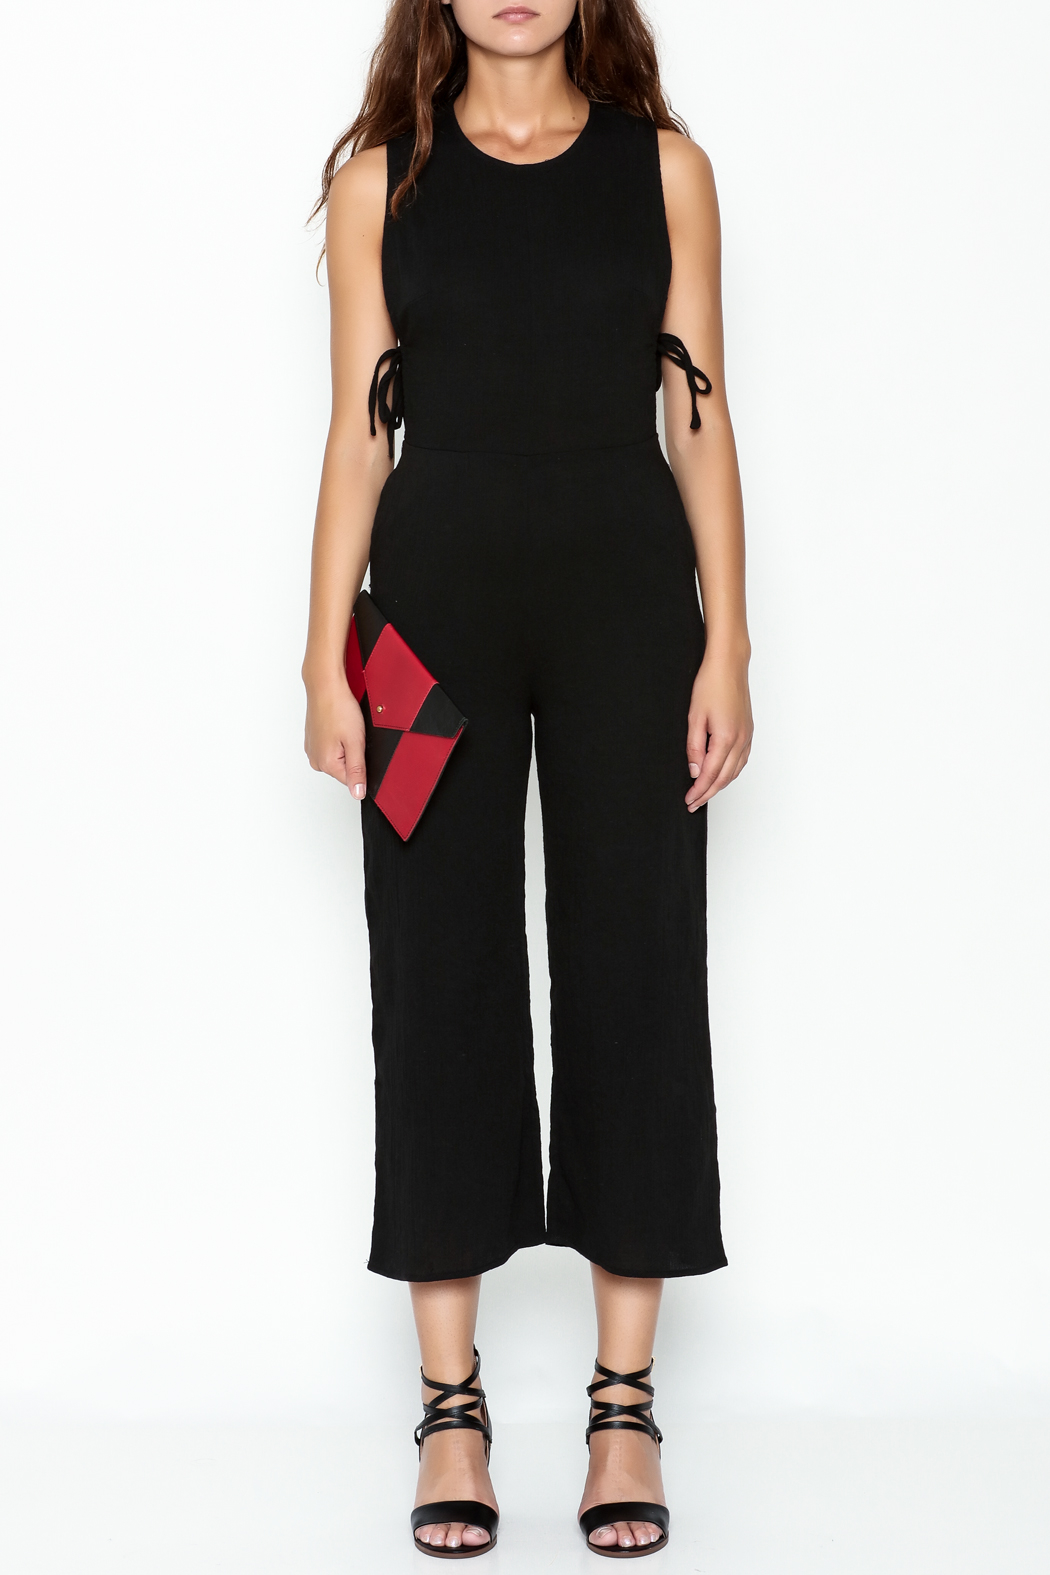 lucca couture Black Side Tie Jumpsuit - Front Full Image